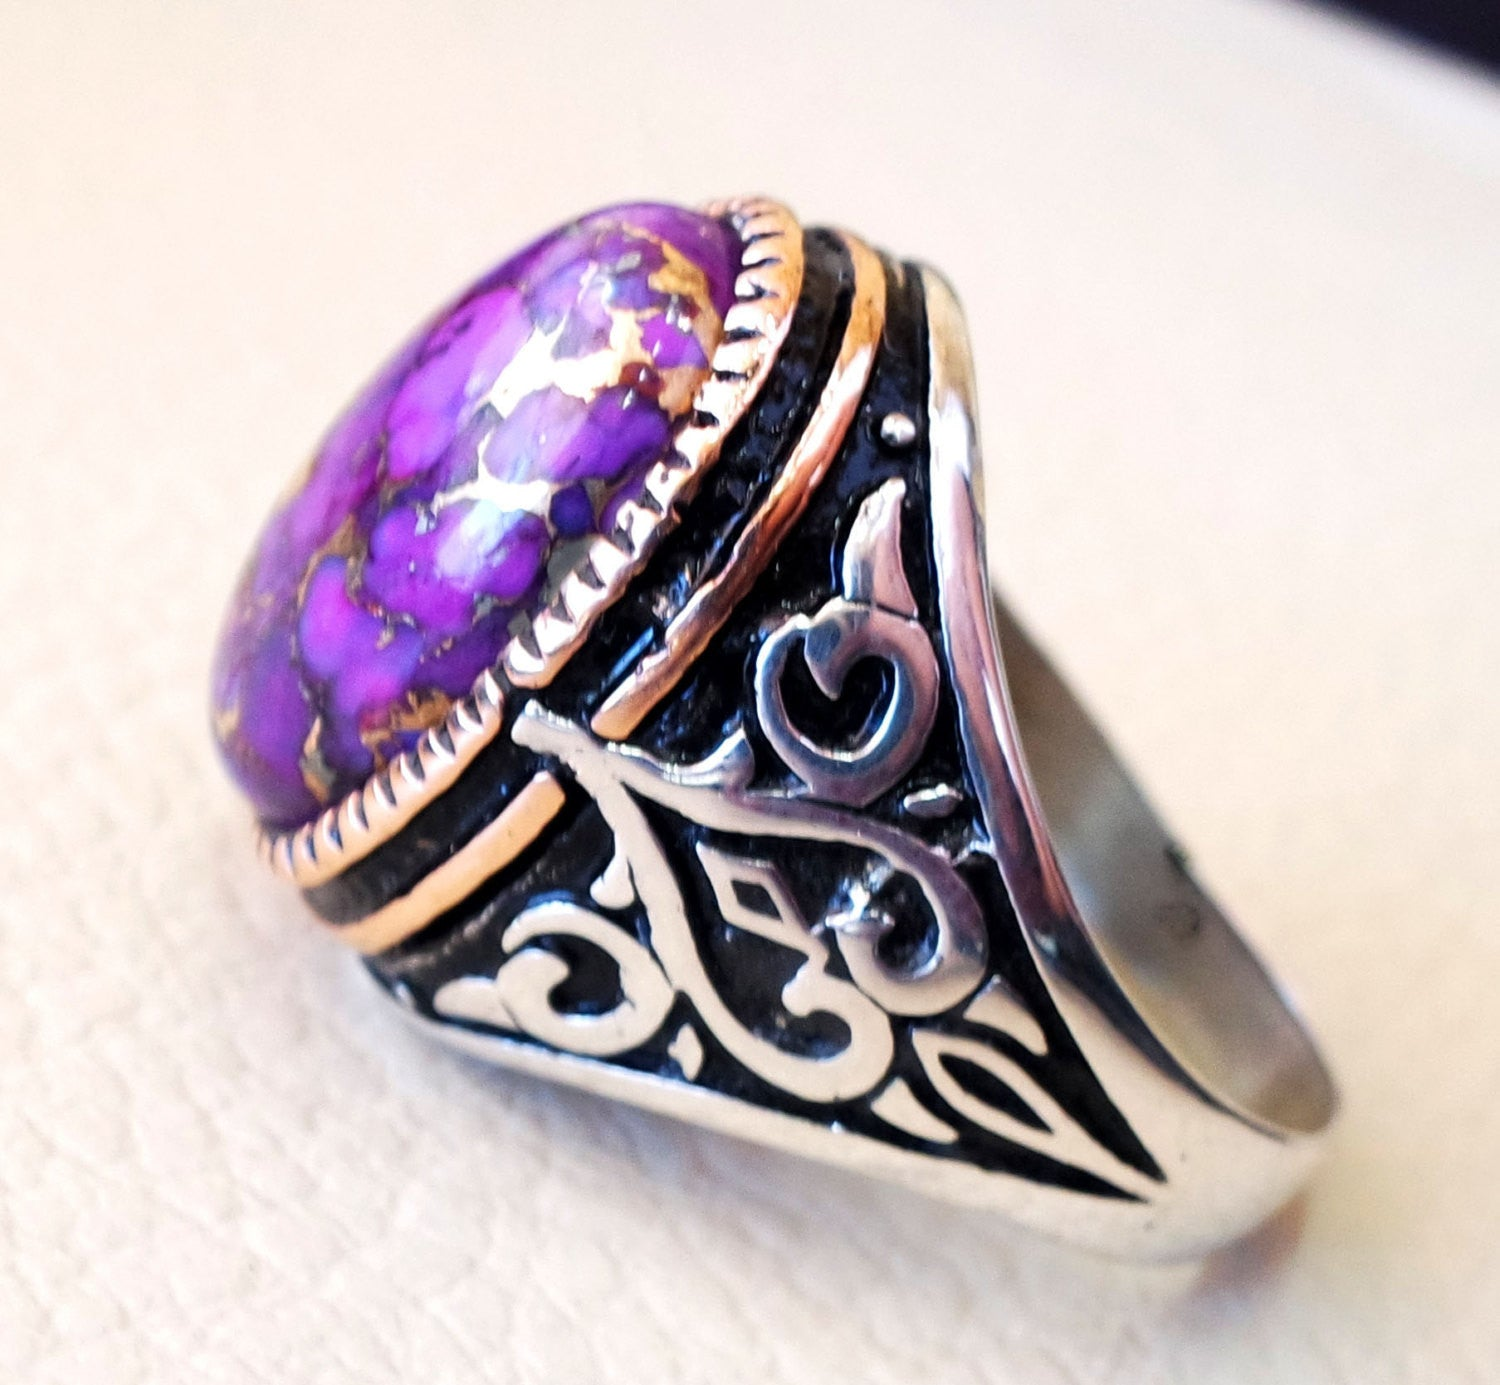 ottoman style heavy ring men sterling silver 925 jewelry copper purple turquoise high quality semi precious natural stone in bronze frame